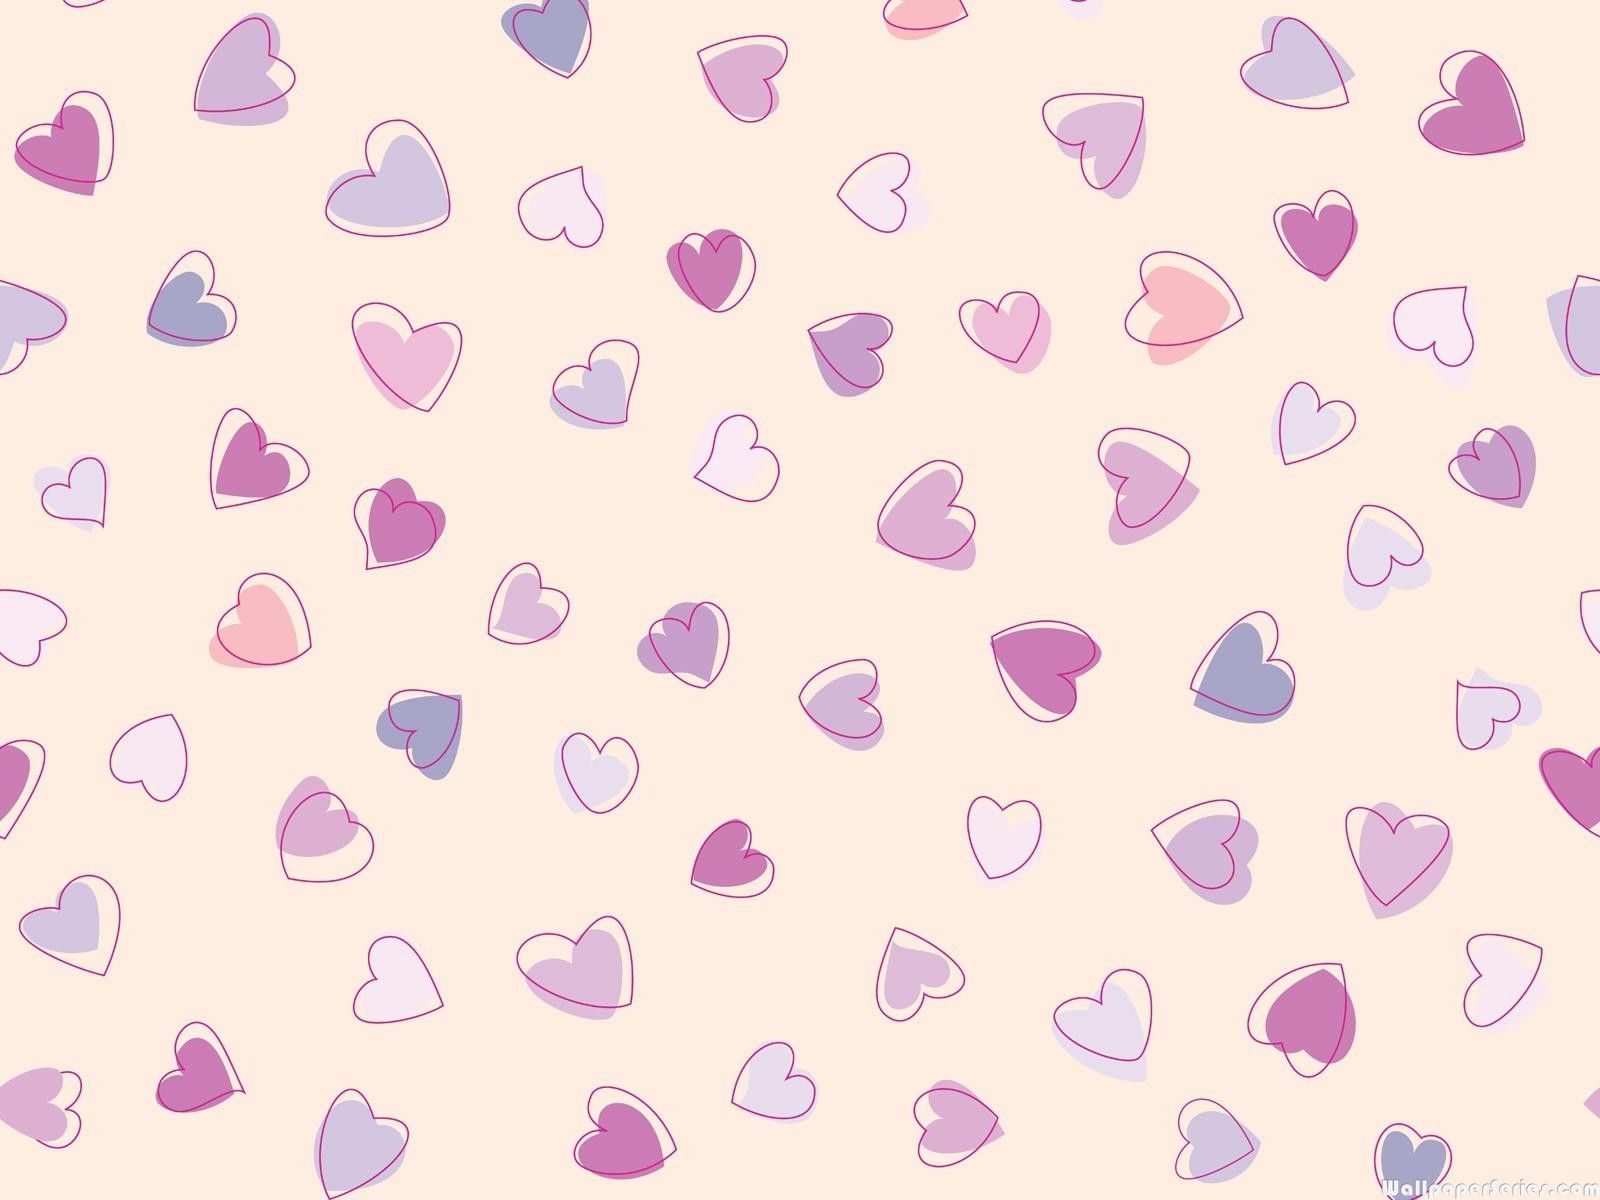 Wallpaper cute Purple Love : cute Heart Tumblr Wallpapers HD Resolution with High Definition Wallpaper Resolution 1600x1200 ...